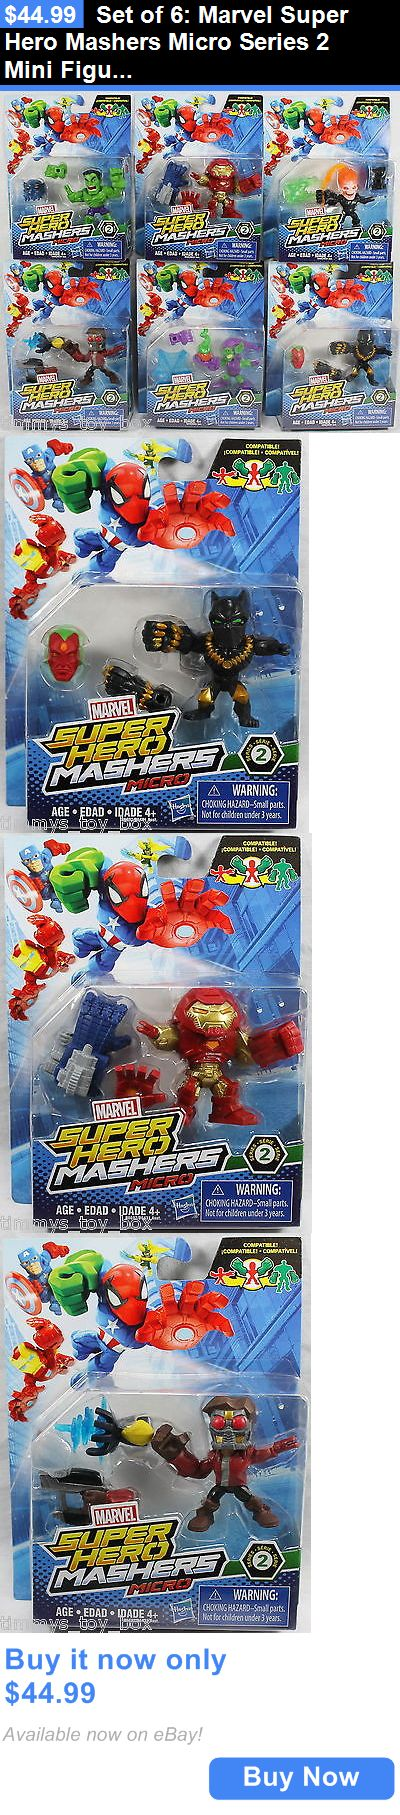 Toys And Games: Set Of 6: Marvel Super Hero Mashers Micro Series 2 Mini Figures BUY IT NOW ONLY: $44.99 #priceabateToysAndGames OR #priceabate